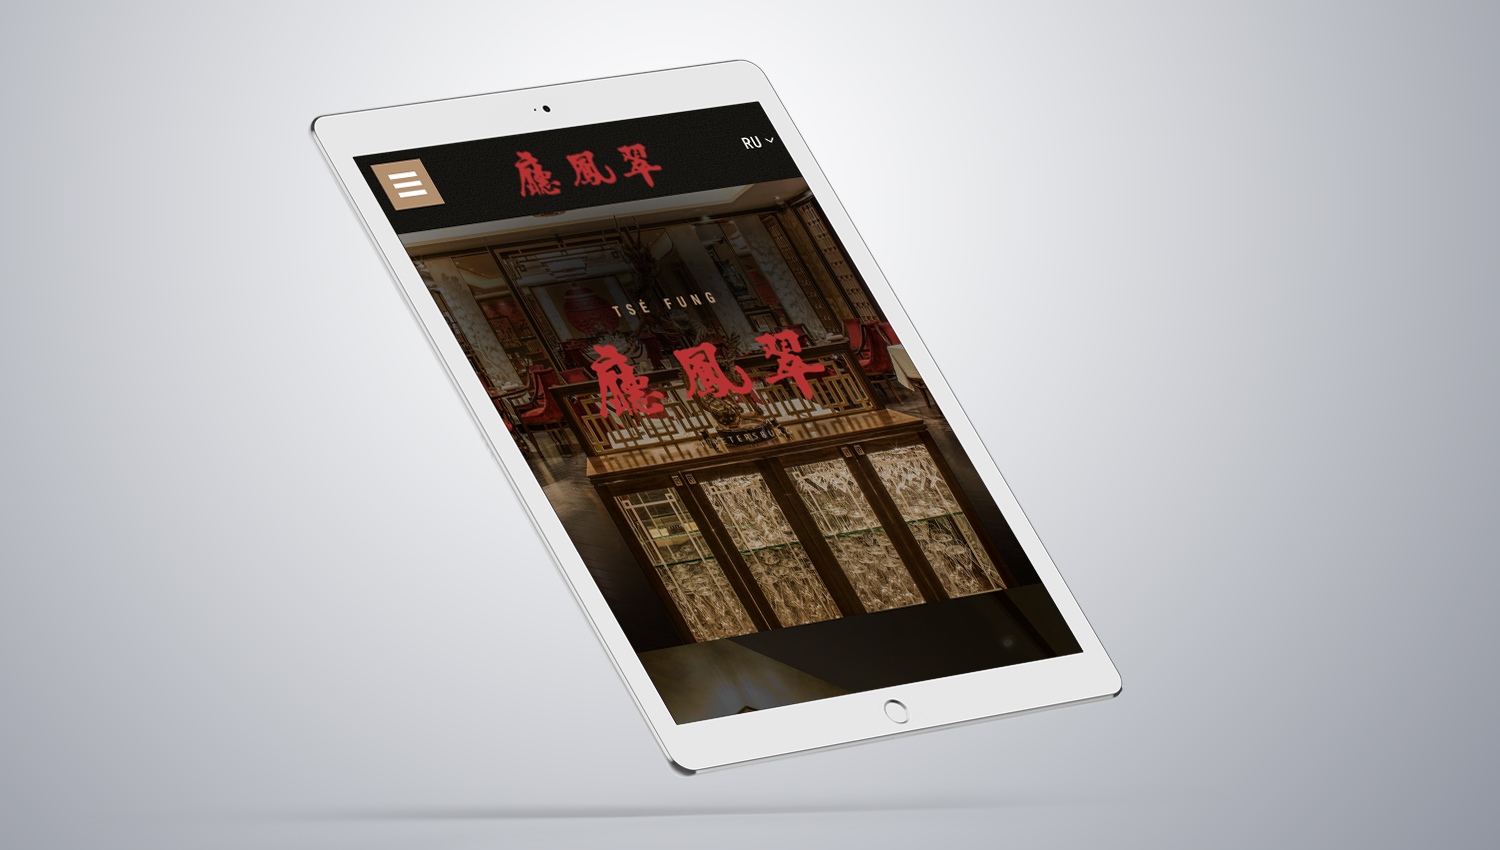 Web design tablet view for TSE Fung Saint Petersburg 2 by 8 Ways